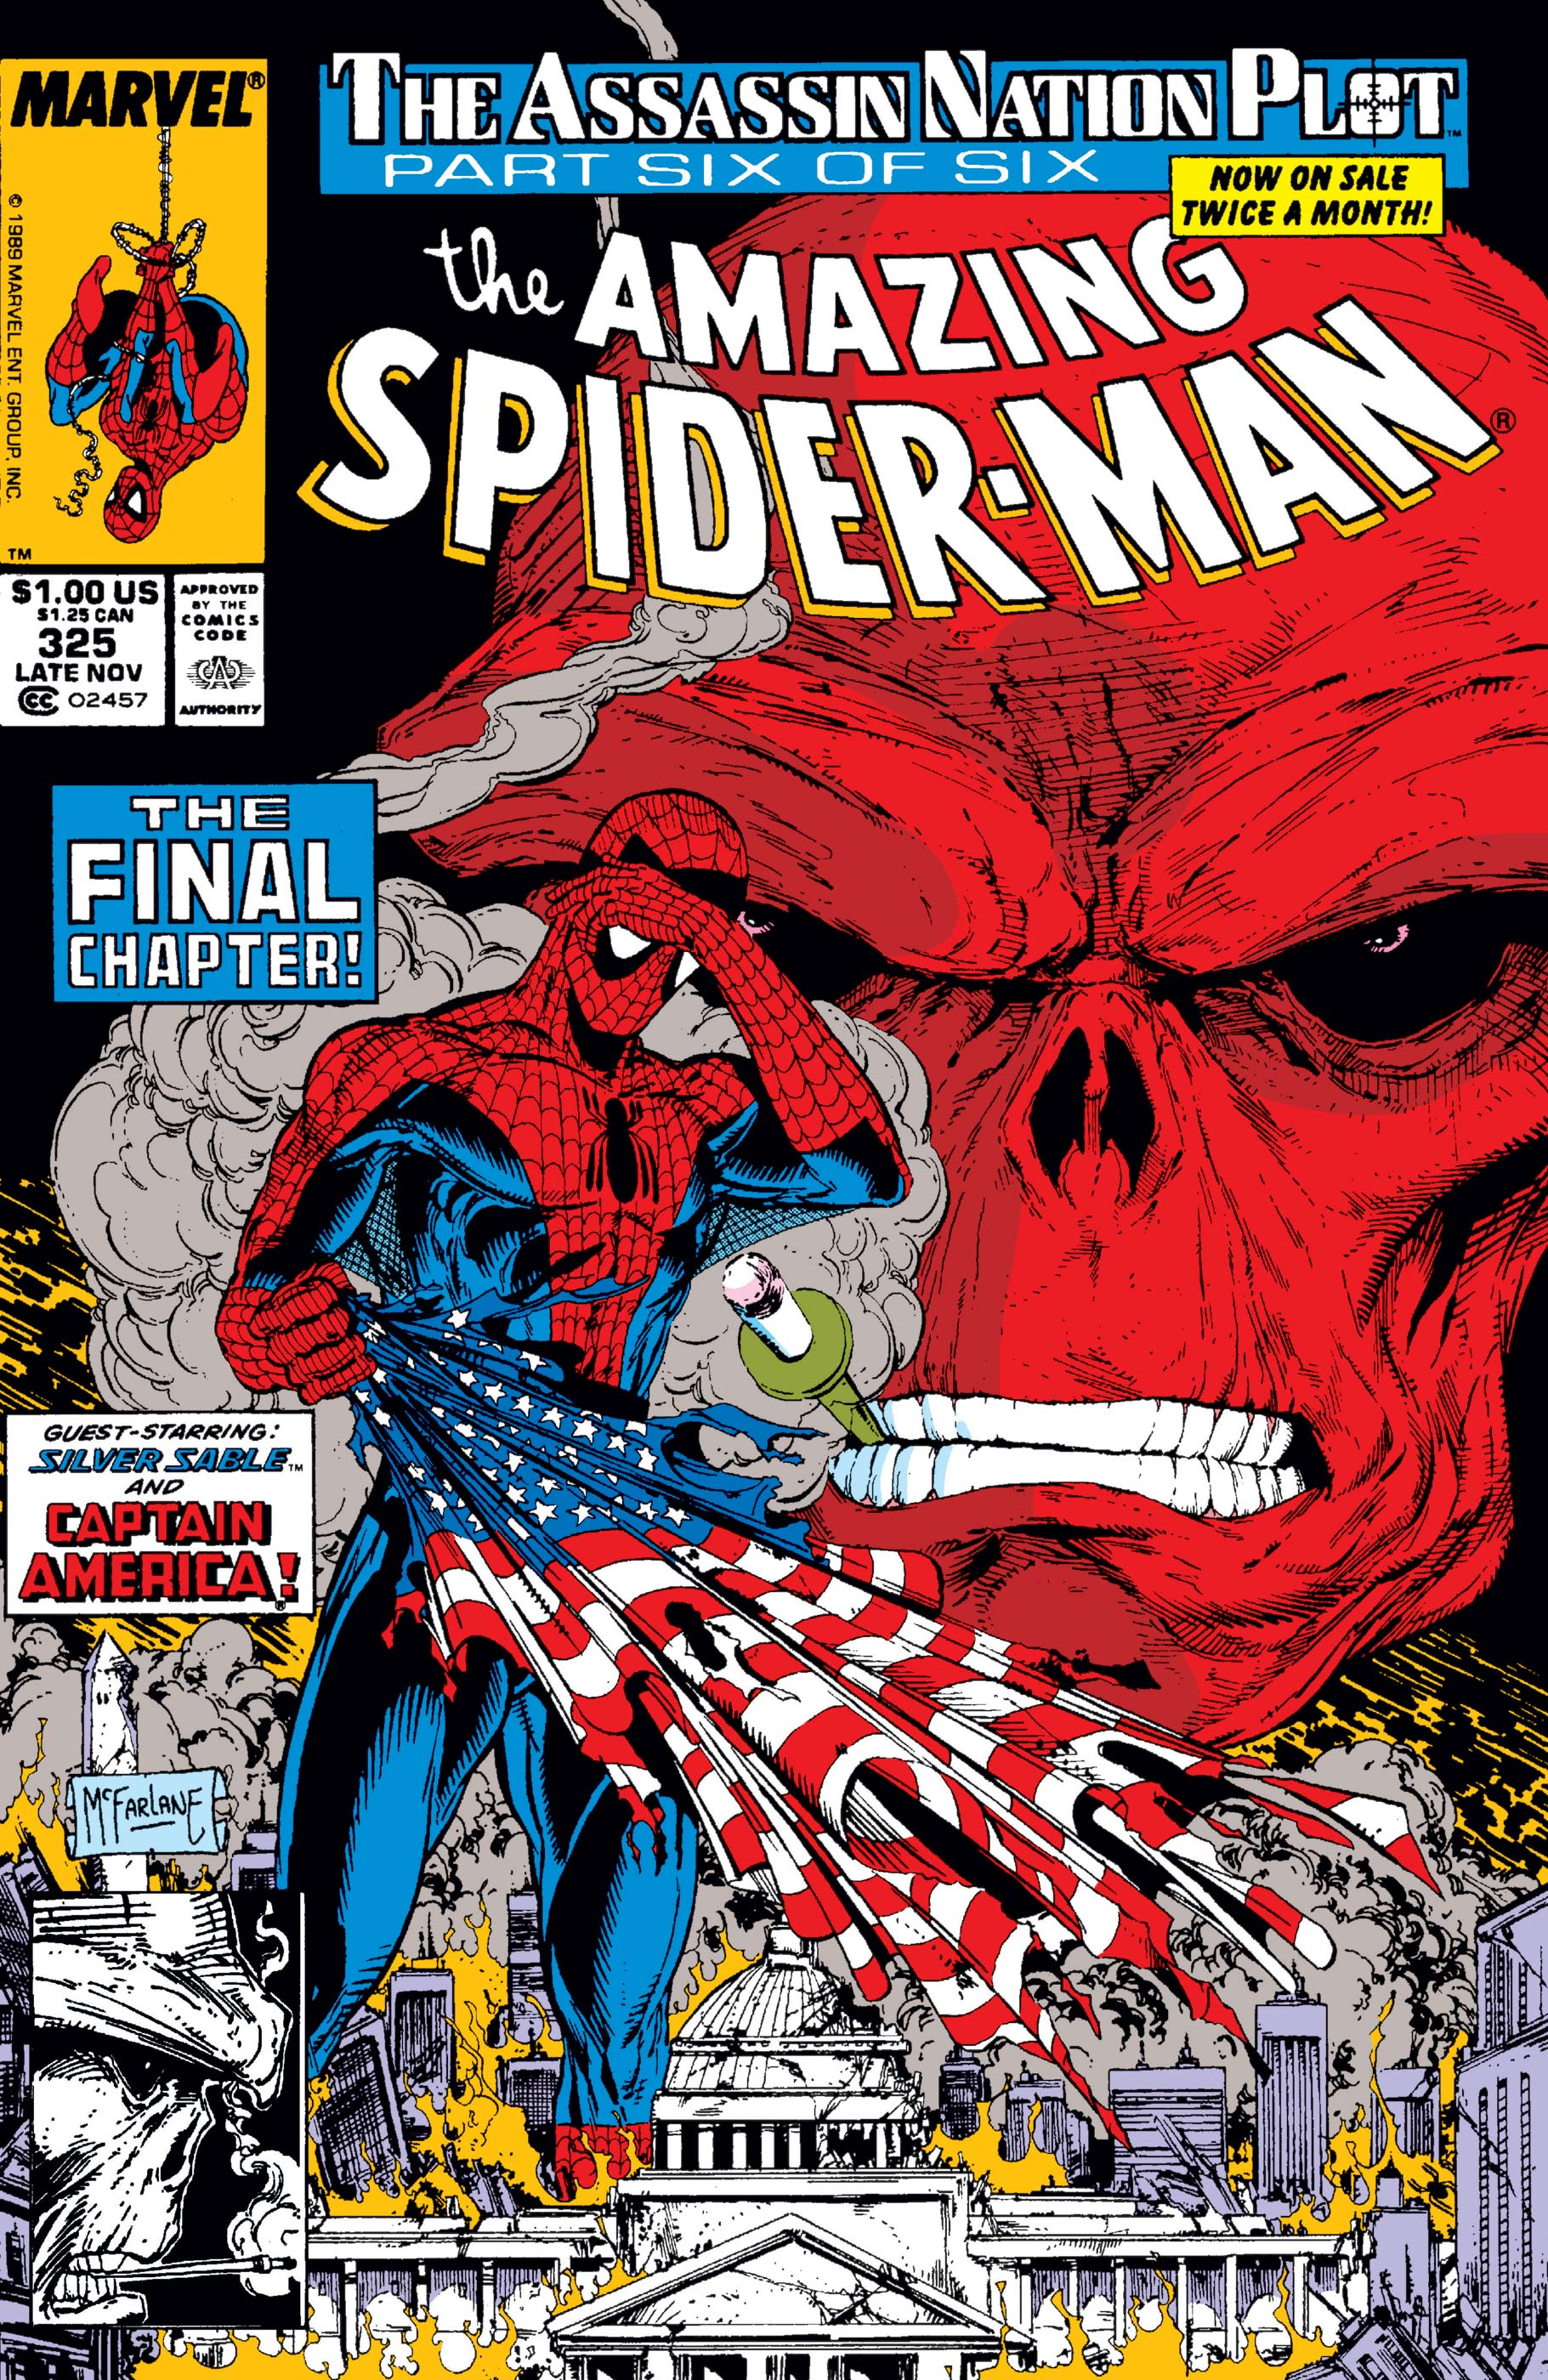 The Amazing Spider-Man (1963) #325